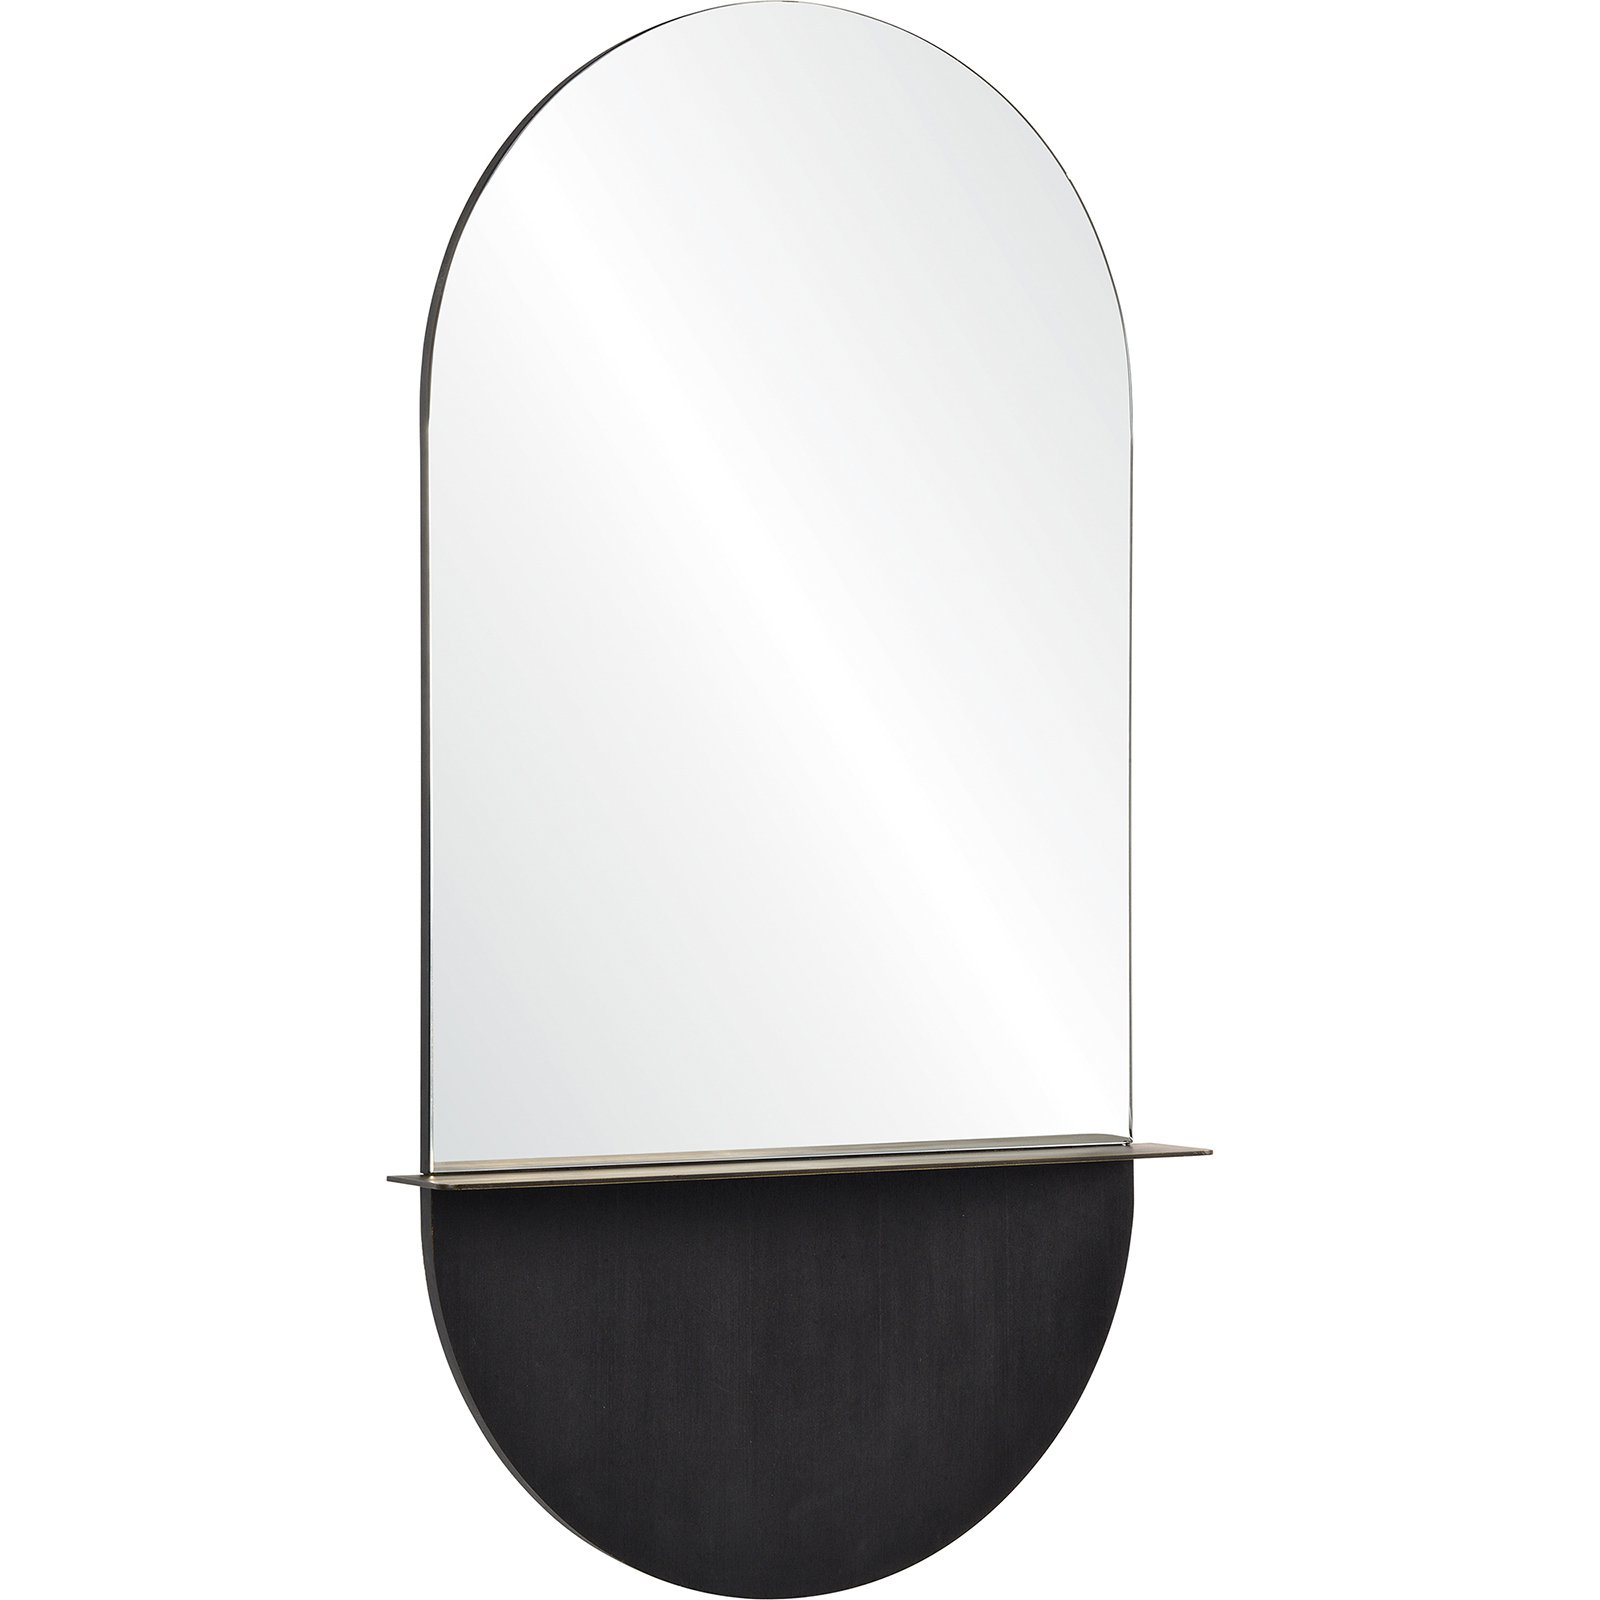 Unframed Wall Mirrors For Well Known Renwil Lisdarra Glass And Brass Unframed Wall Mirror – 24w X 44h In (View 15 of 20)